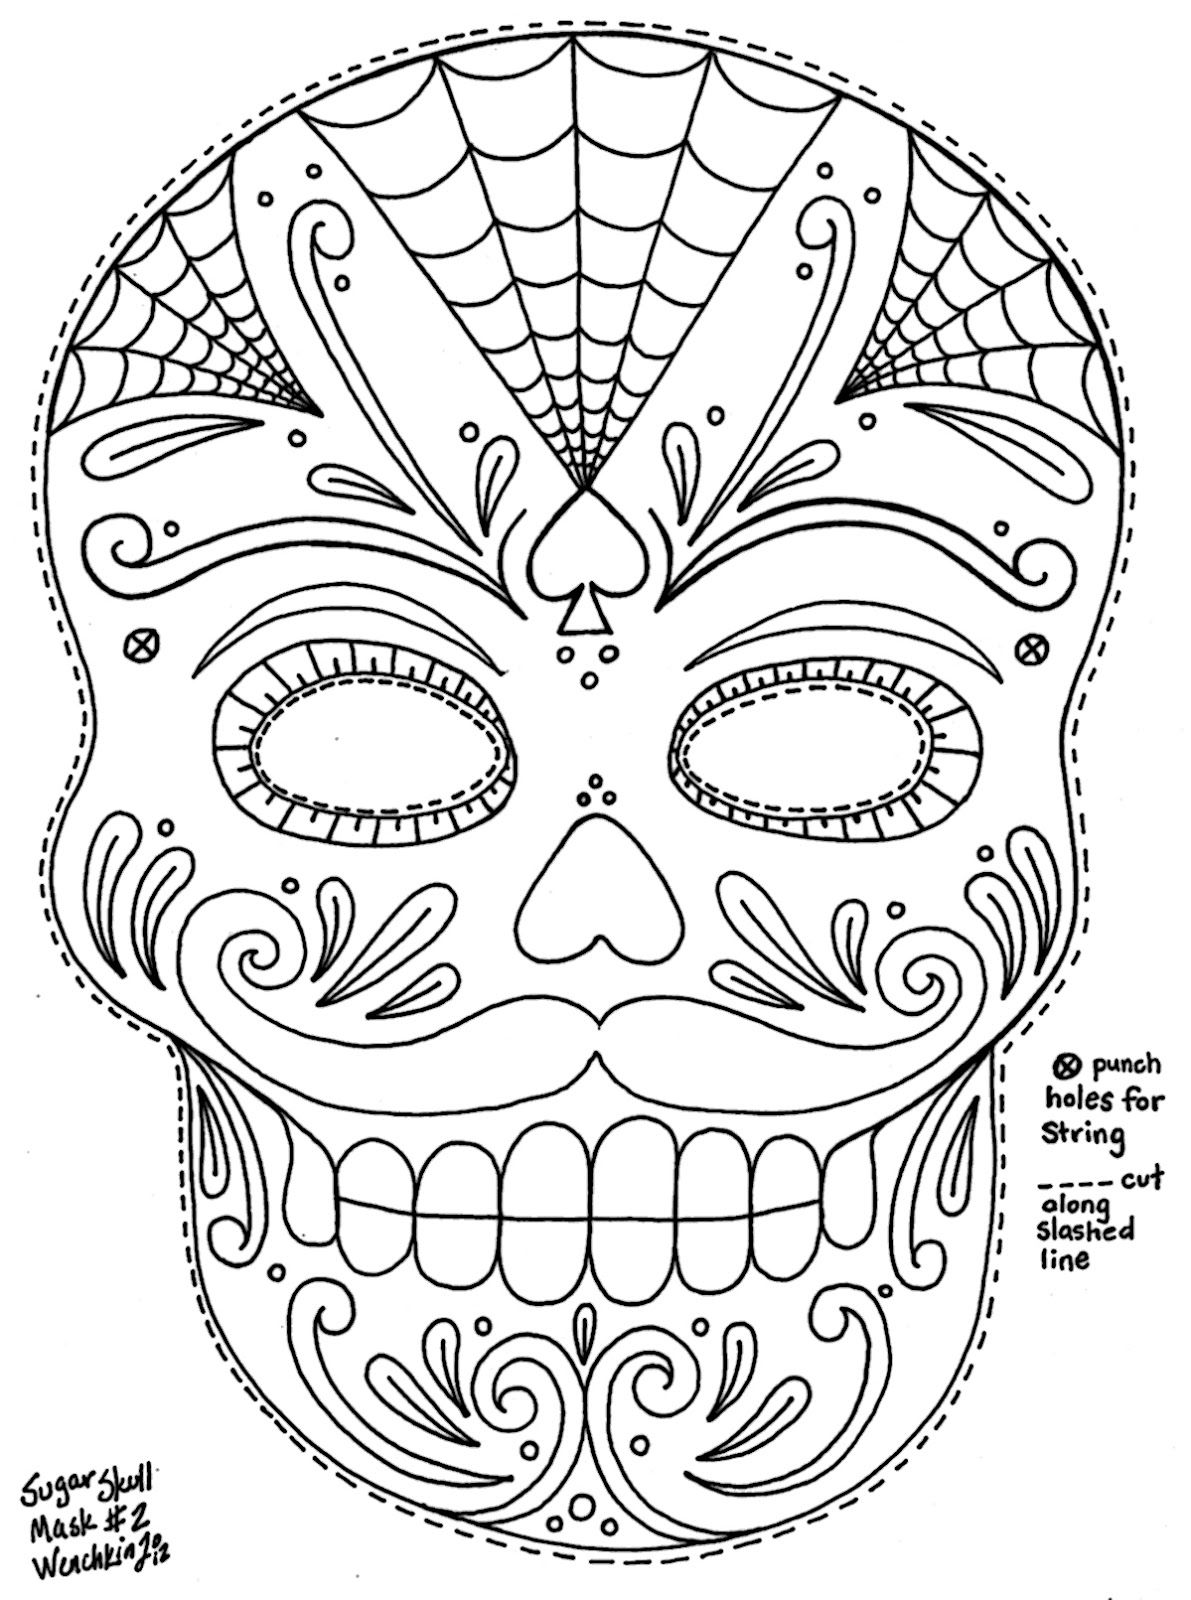 Halloween art therapy coloring pages - Yucca Flats N M Wenchkin S Coloring Pages Moustached Sugar Skull Mask